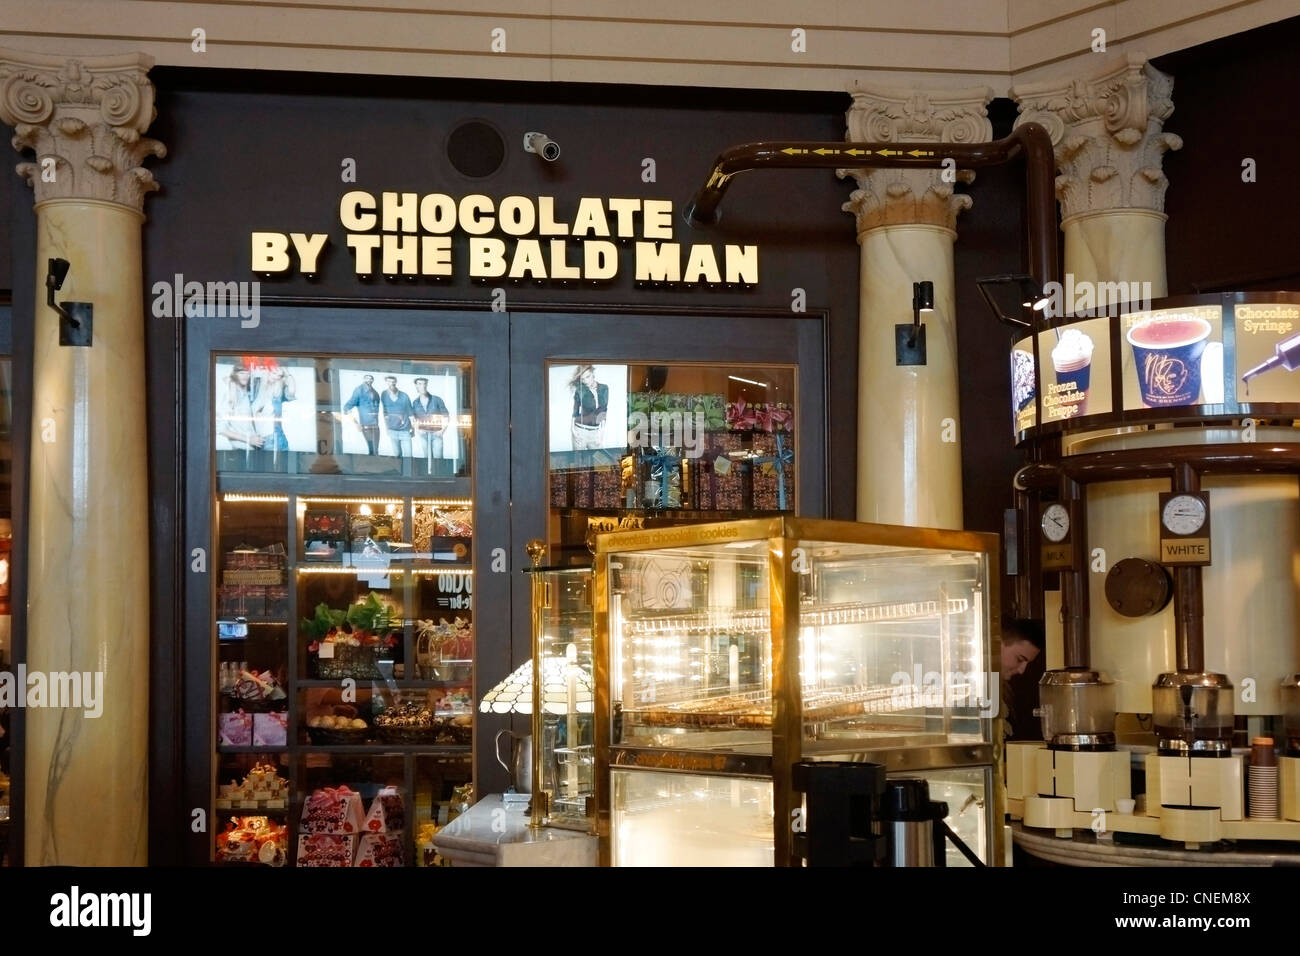 Chocolate by the Bald Man, Max Brenner, Las Vegas, Nevada, USA ...